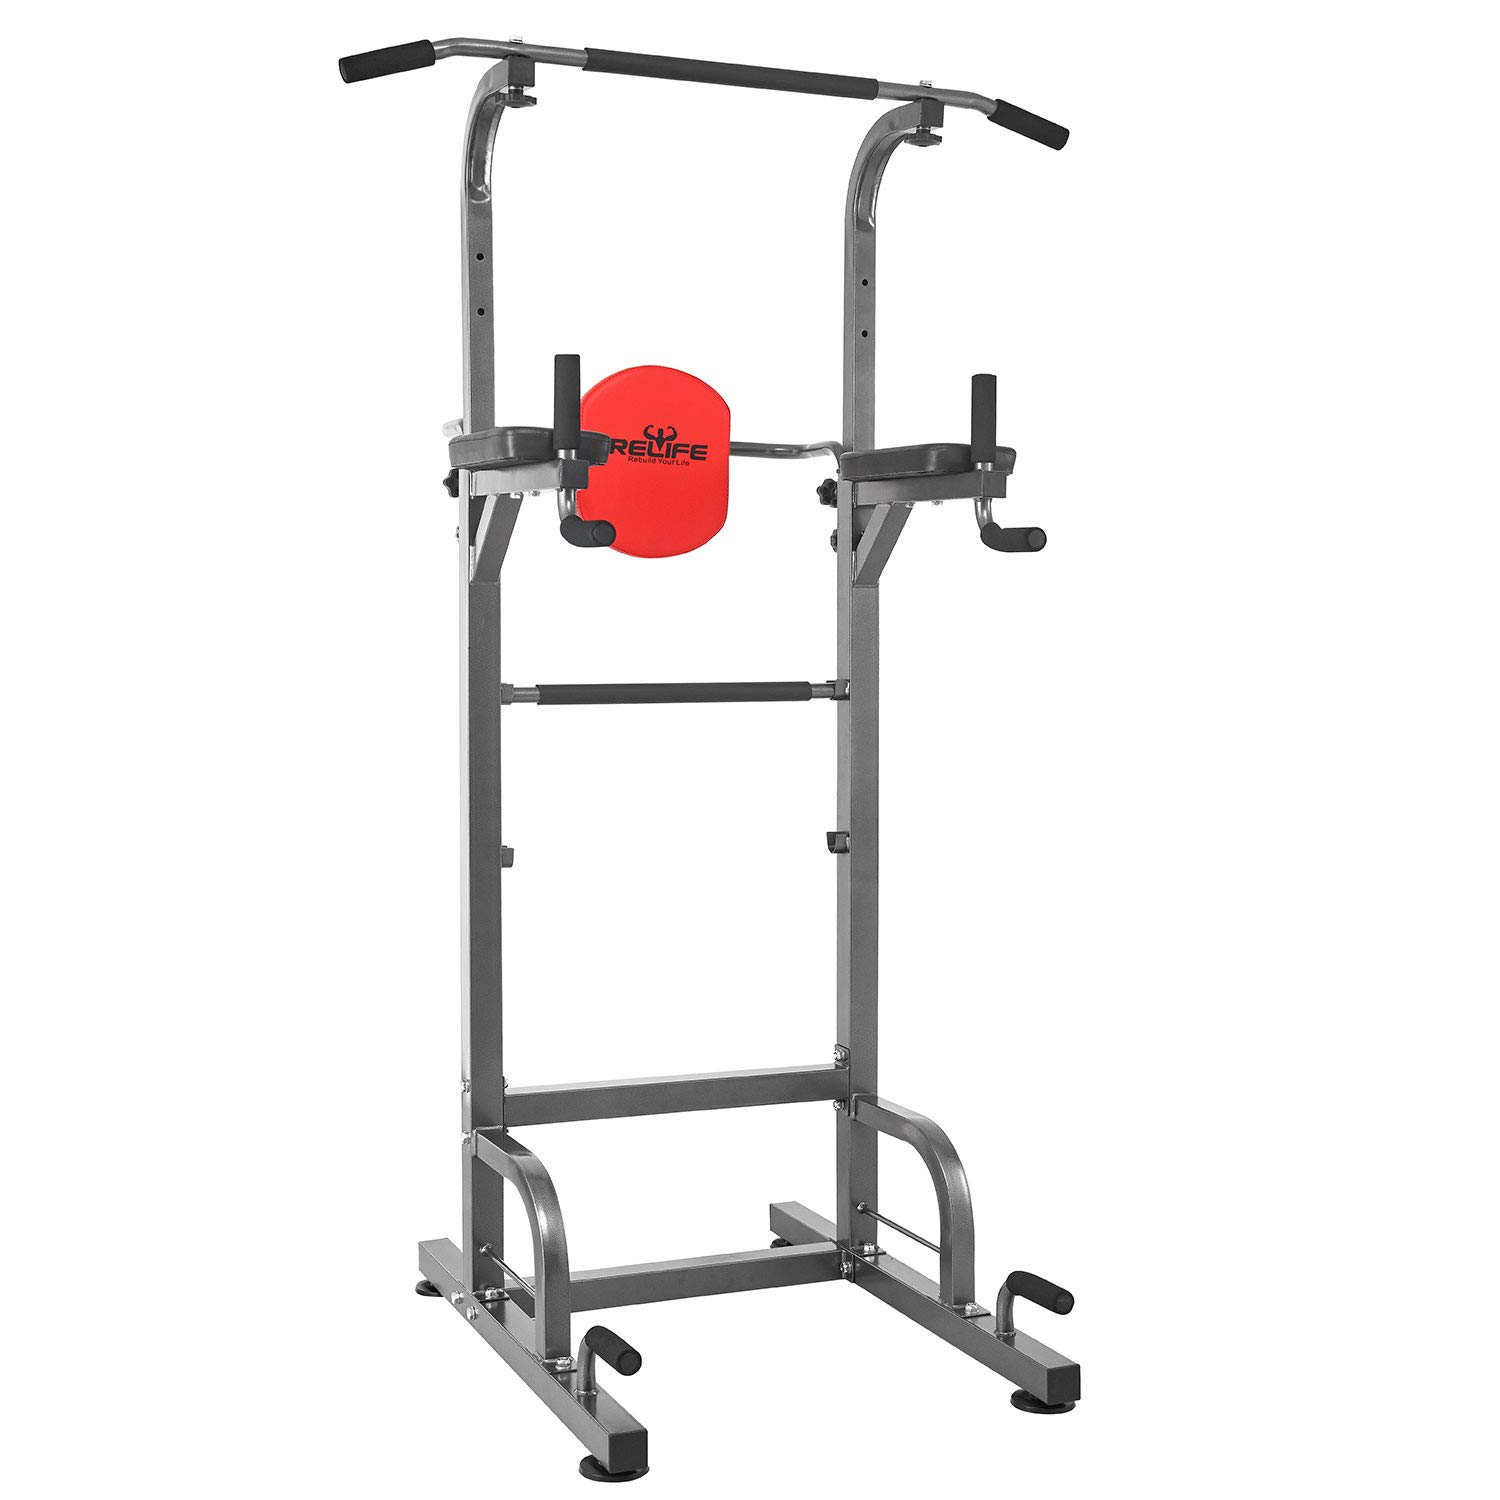 Amazon.com : RELIFE REBUILD YOUR LIFE Power Tower Workout Dip Station for  Home Gym Strength Training Fitness Equipment : Sports & Outdoors